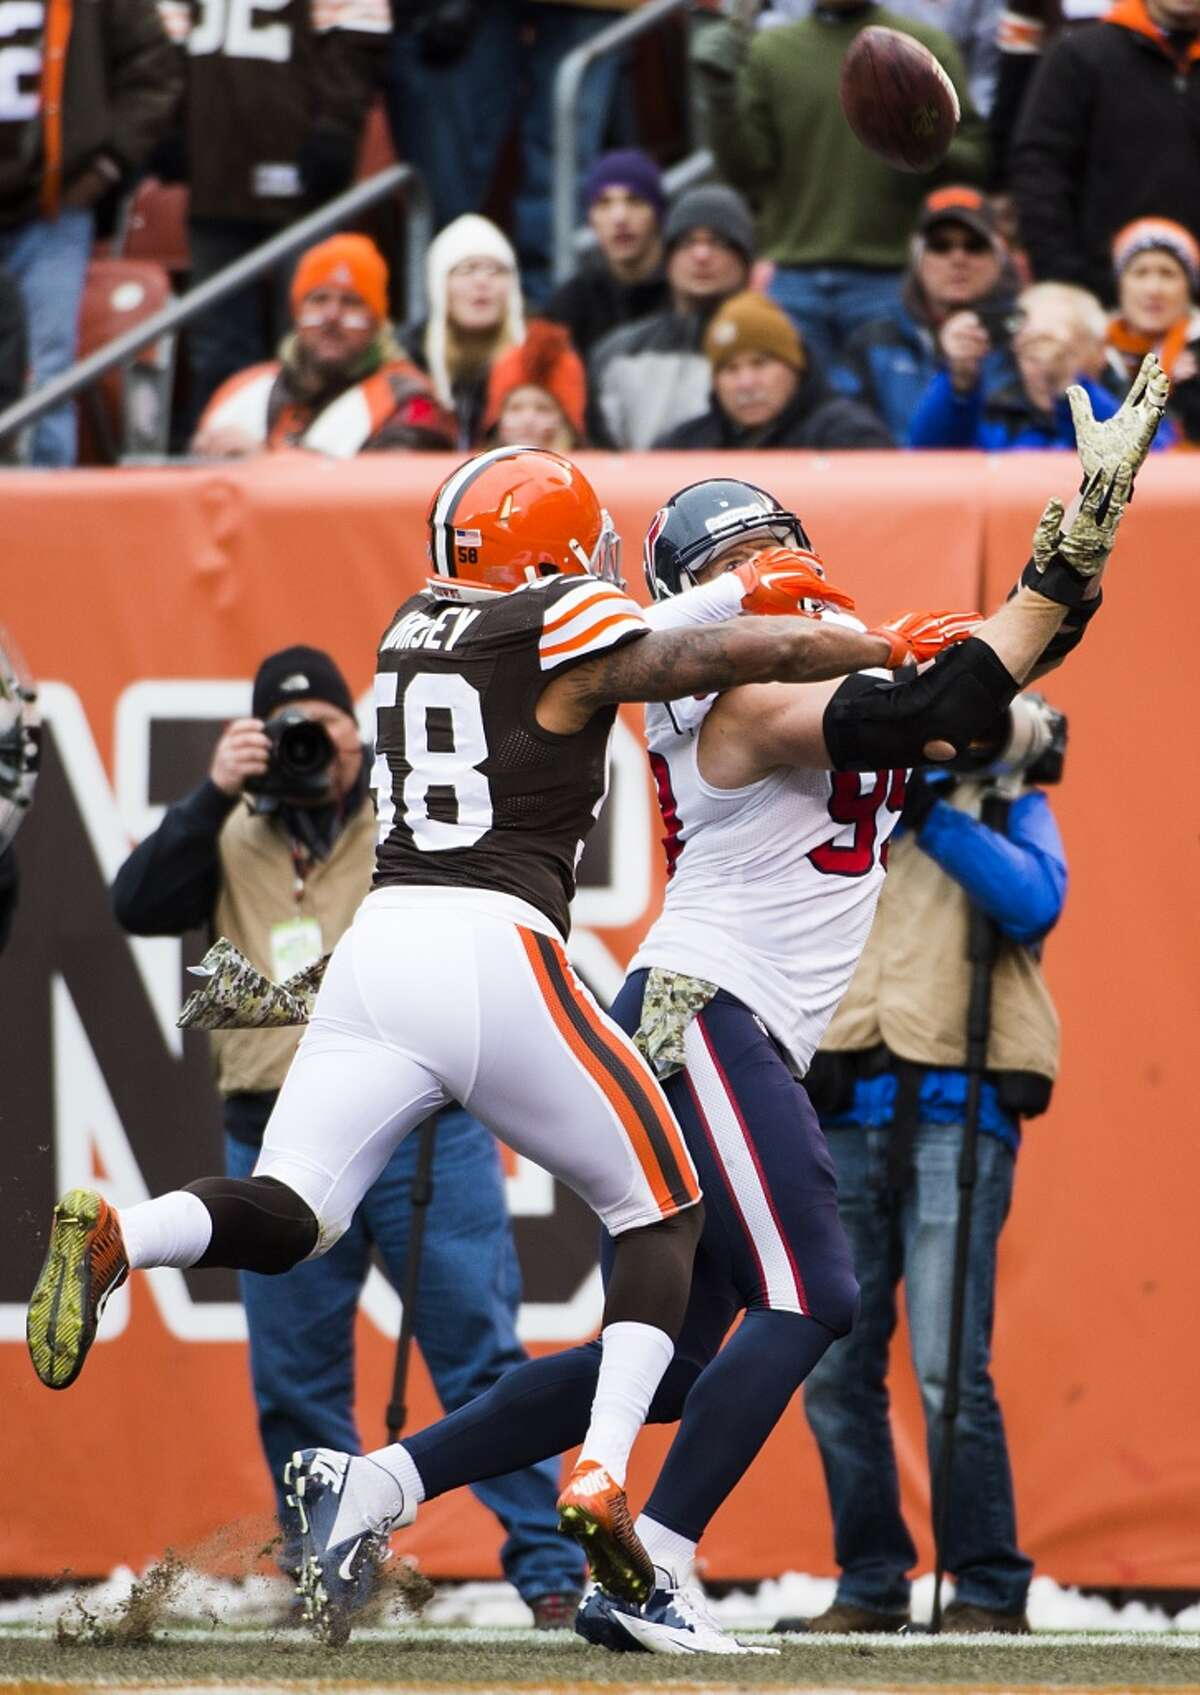 Houston Texans defensive end J.J. Watt (99) catches a touchdown pass despite the defense from Cleveland Browns inside linebacker Chris Kirksey (58) during the first quarter of NFL football game at FirstEnergy Stadium on Sunday, Nov. 16, 2014, in Cleveland. ( Smiley N. Pool / Houston Chronicle )